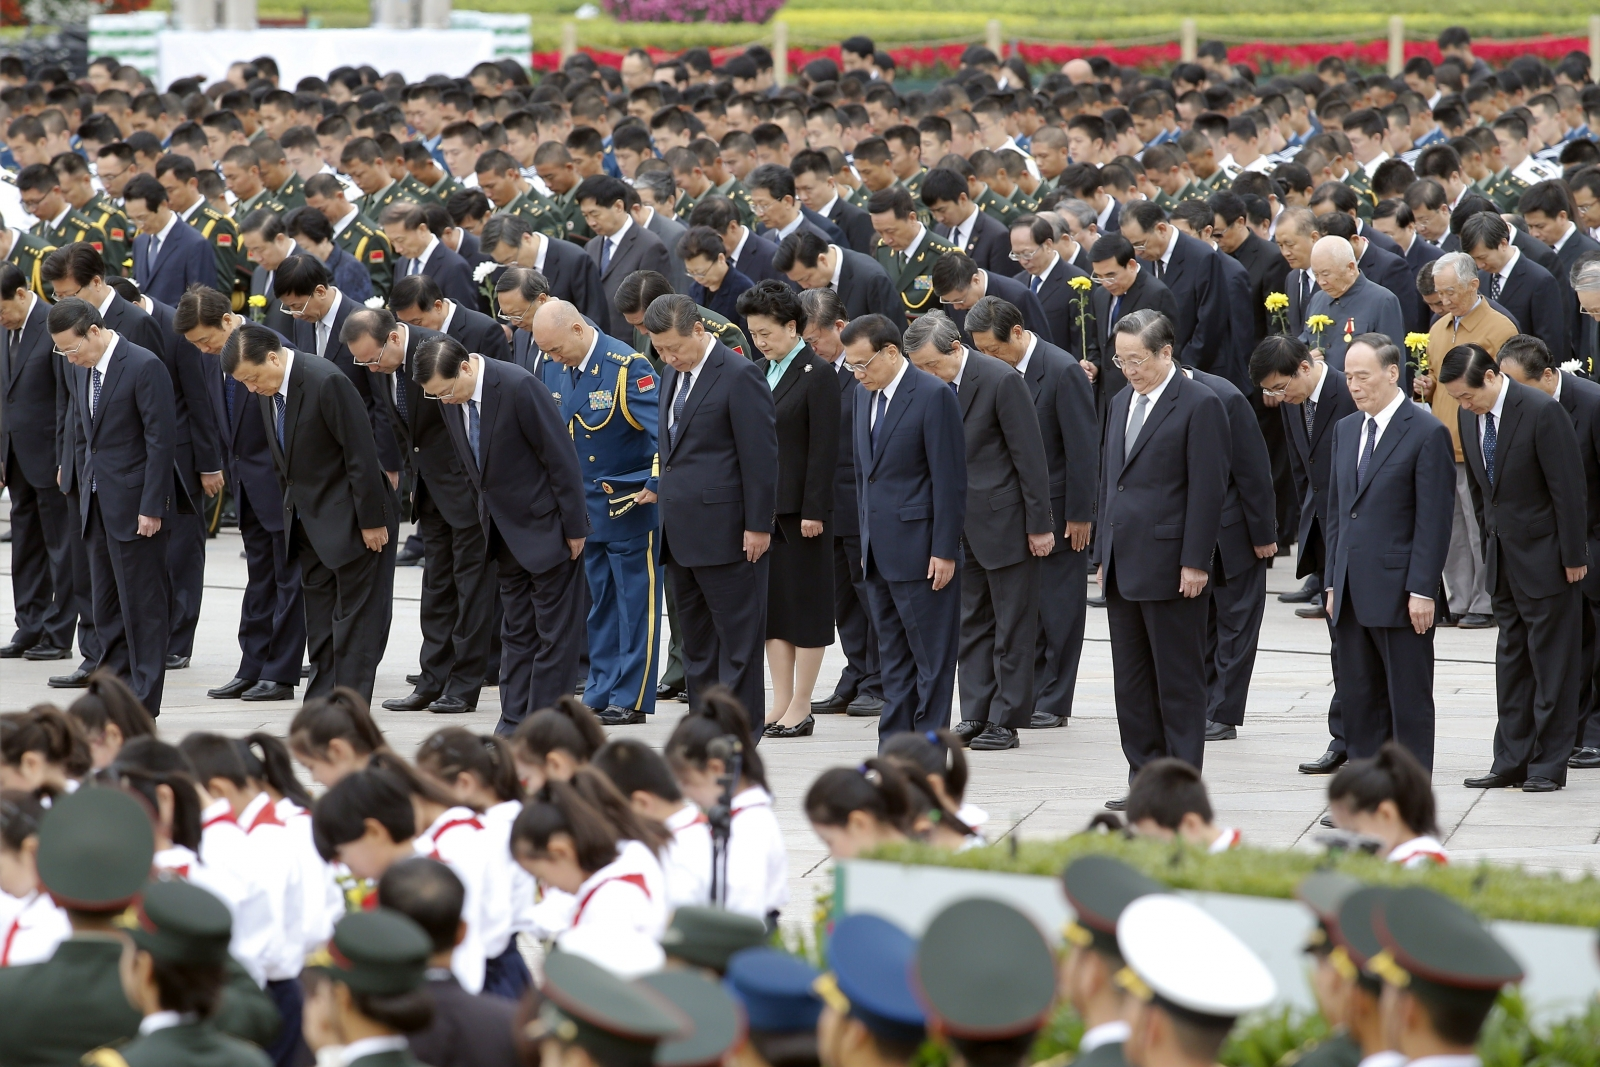 Tiananmen Square memorial service ahead of China National Day